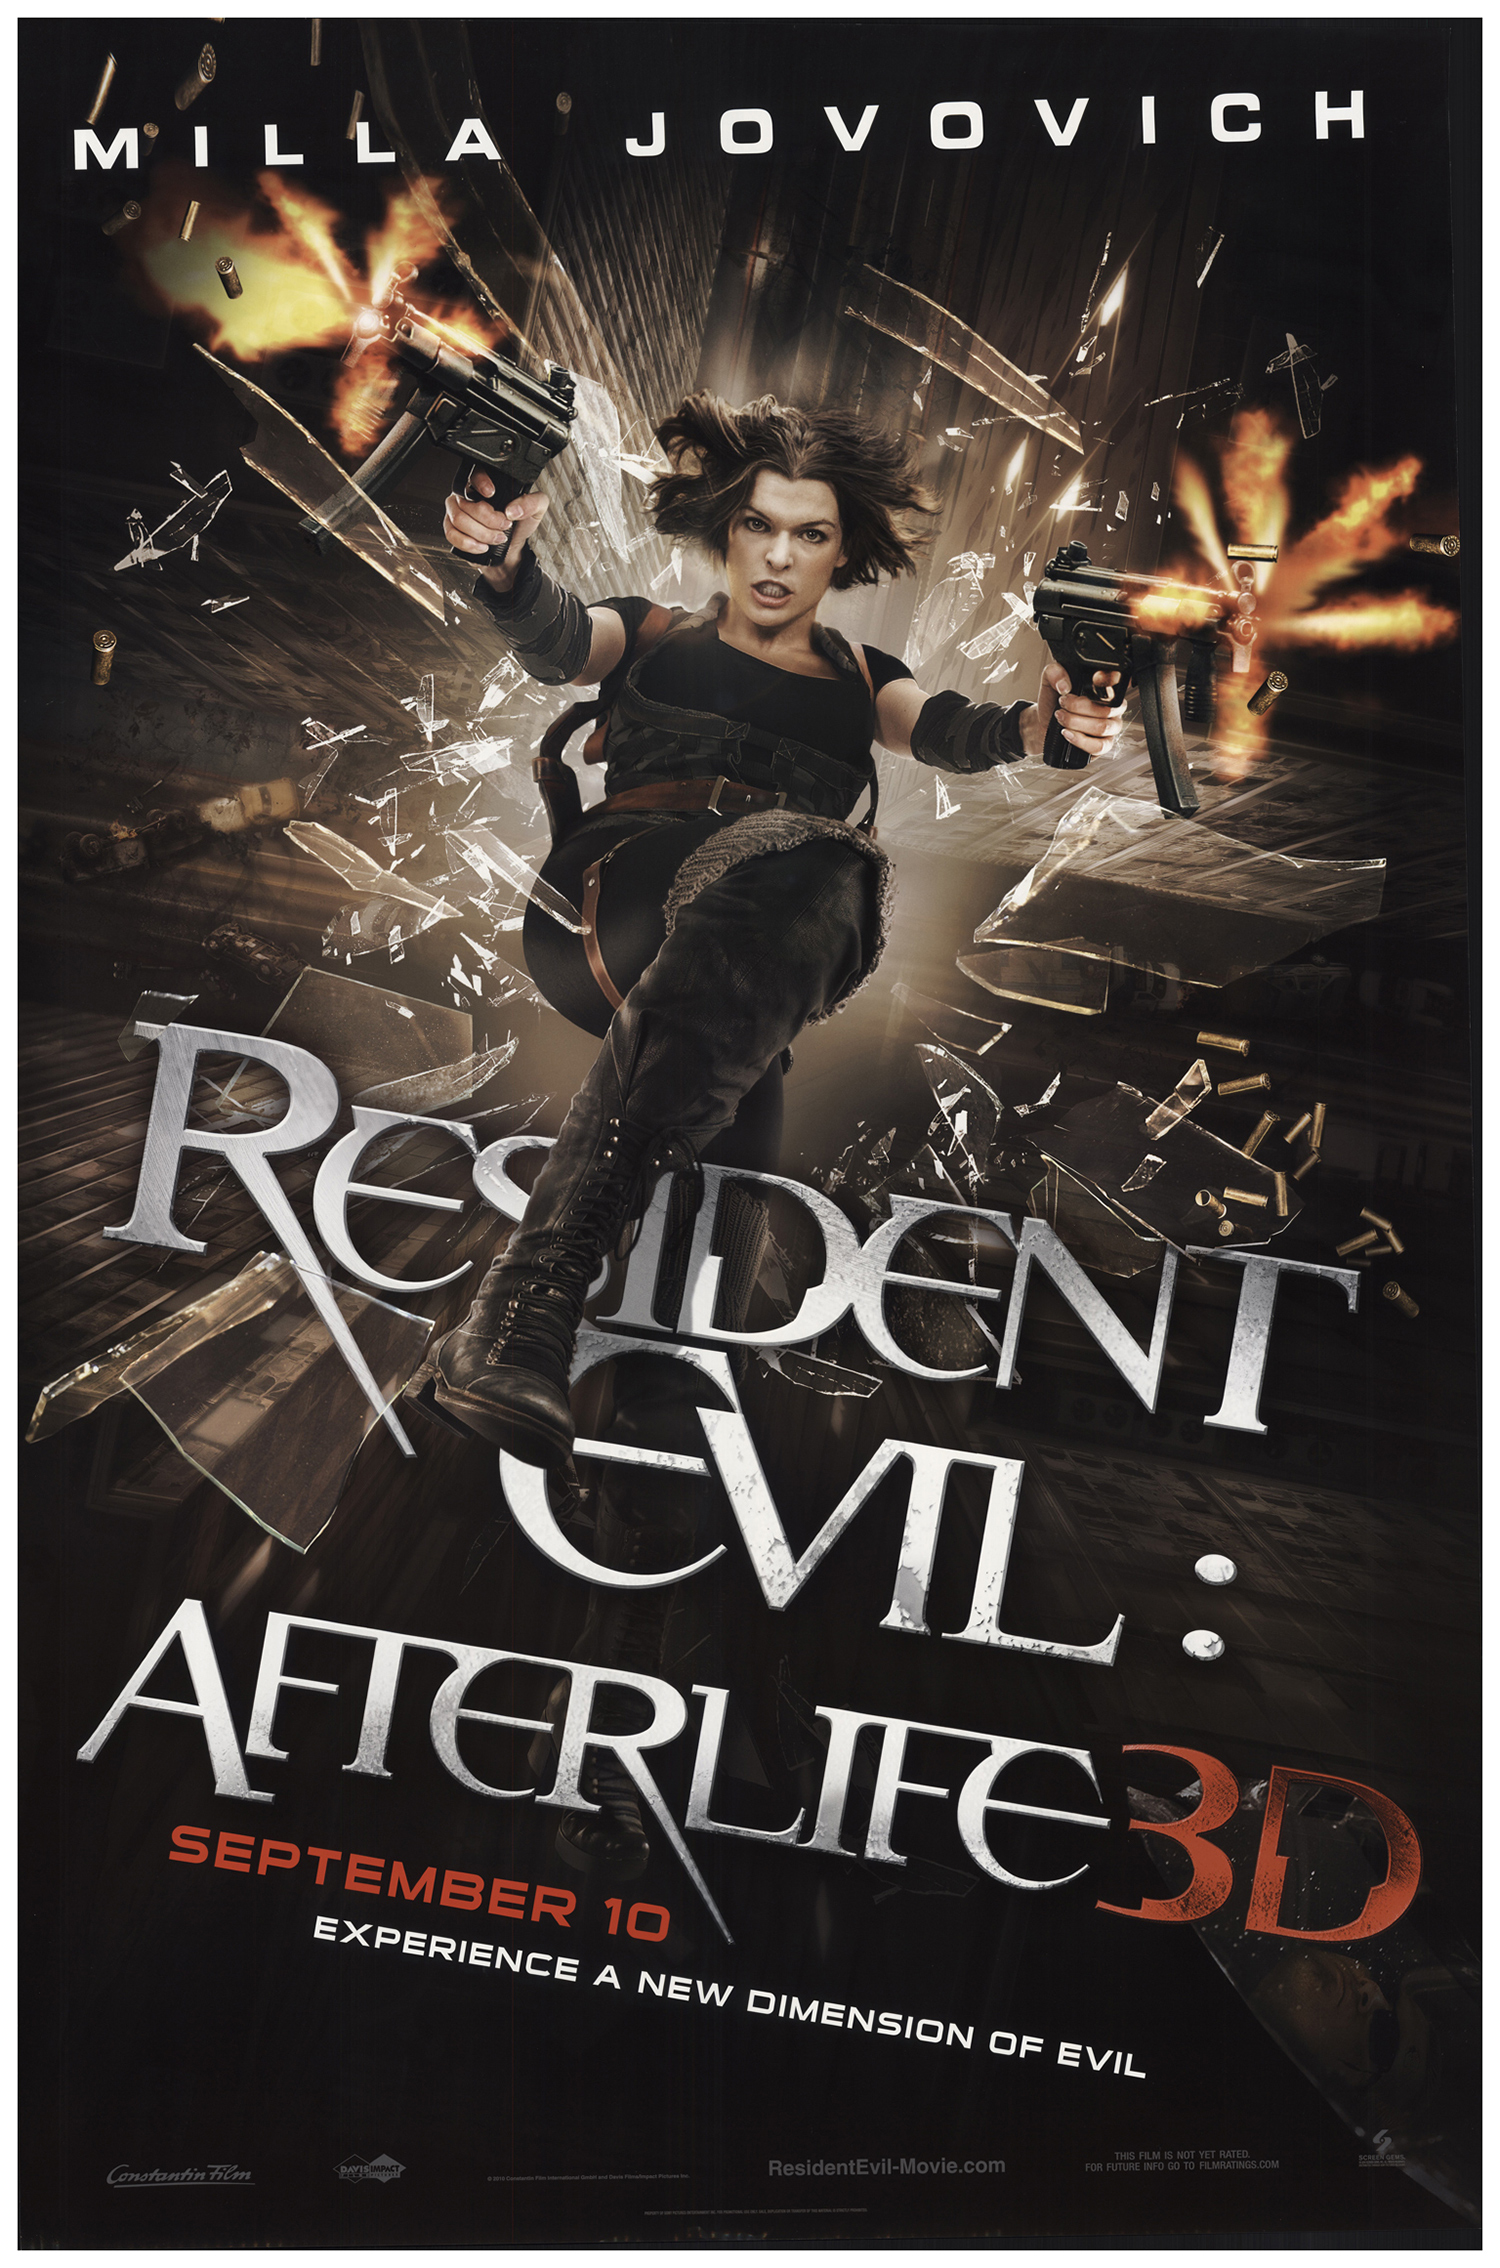 Resident Evil Afterlife 2010 Original Movie Poster Fff 67145 Fffmovieposters Com